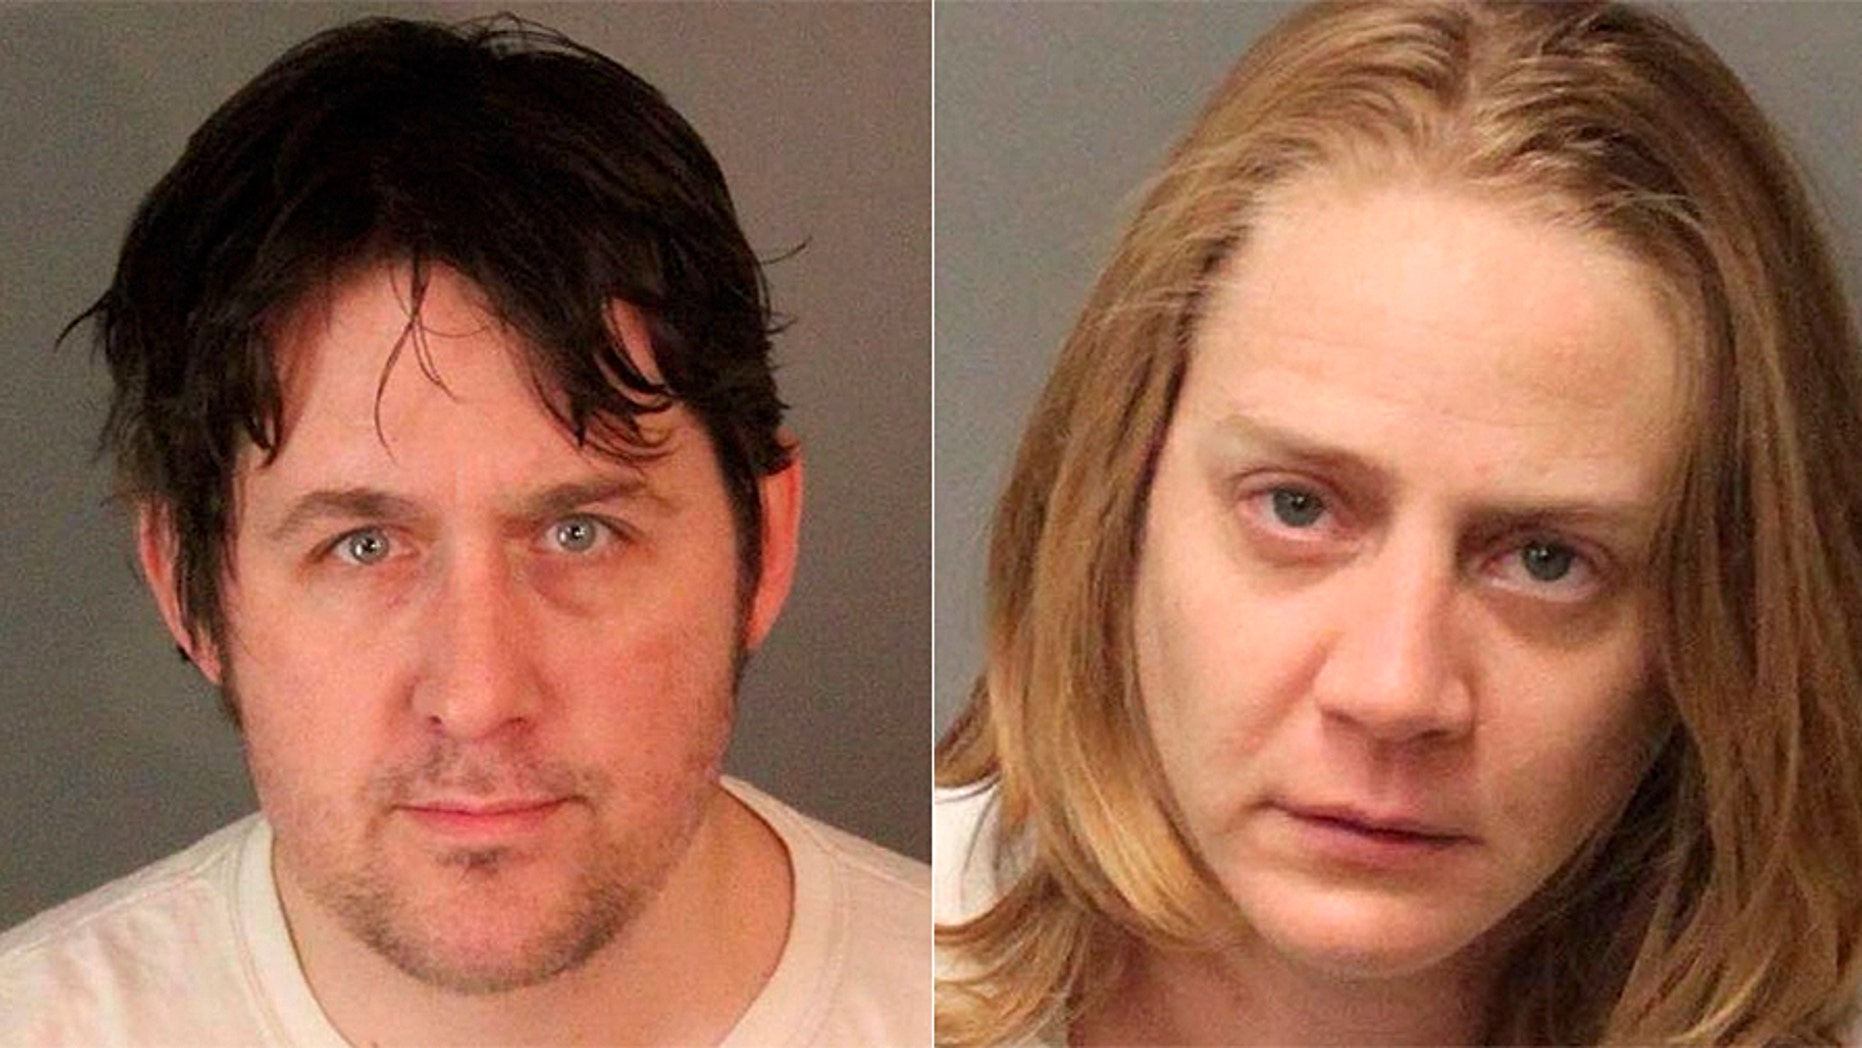 Benjamin Baldassarre and Ashley Carroll are accused of using a drone to sell drugs to customers, police said.